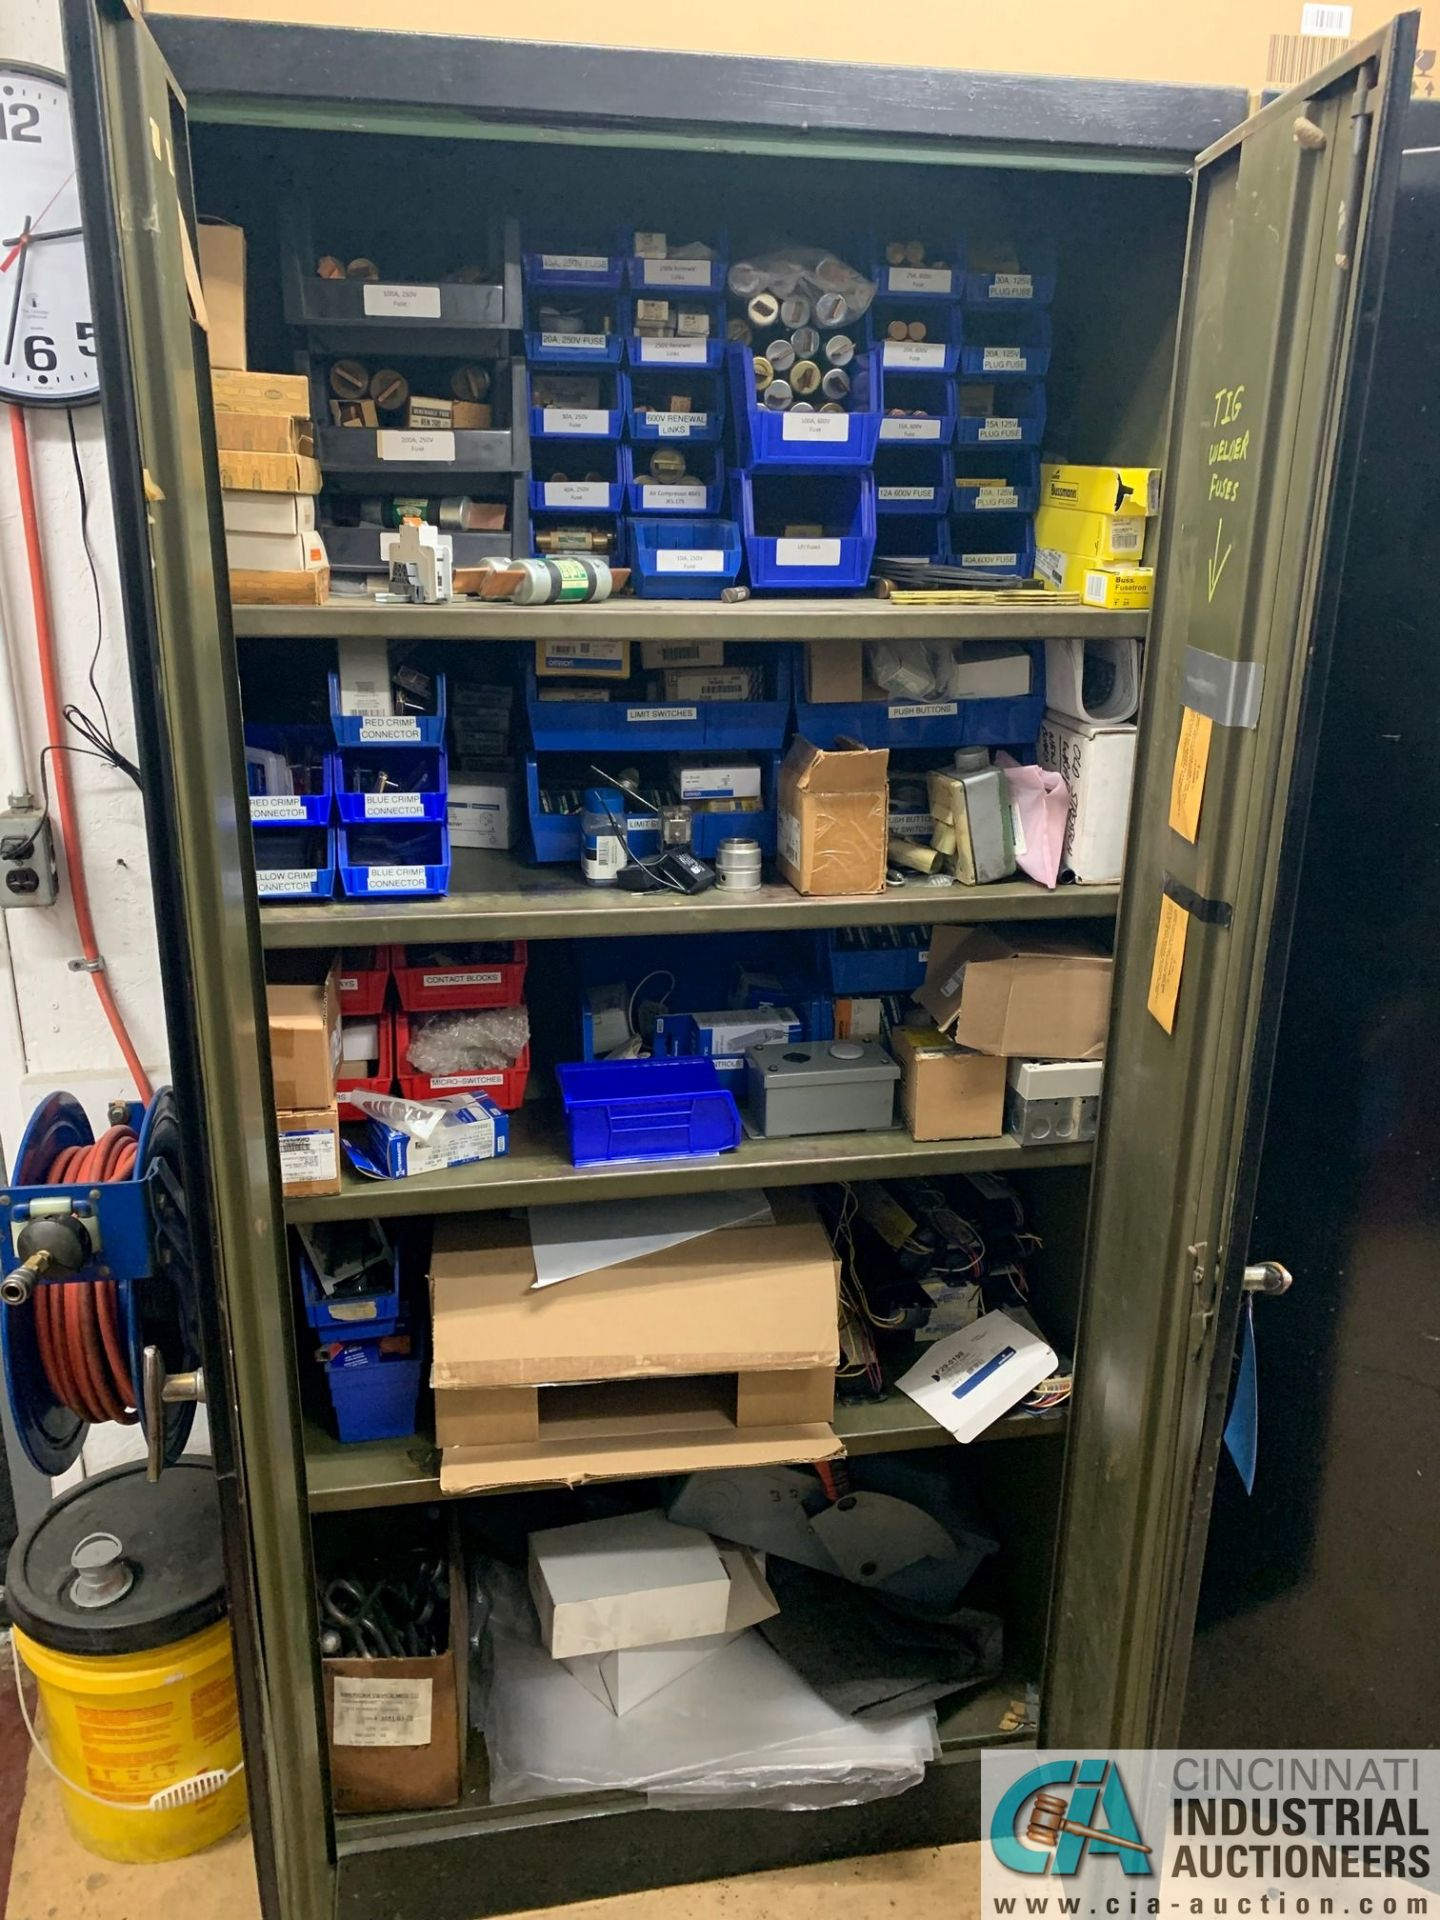 (LOT) (4) CABINETS WITH MAINTENANCE PARTS AND SUPPLIES, FUSES, WIRE, CONNECTORS AND RELATED - Image 5 of 13